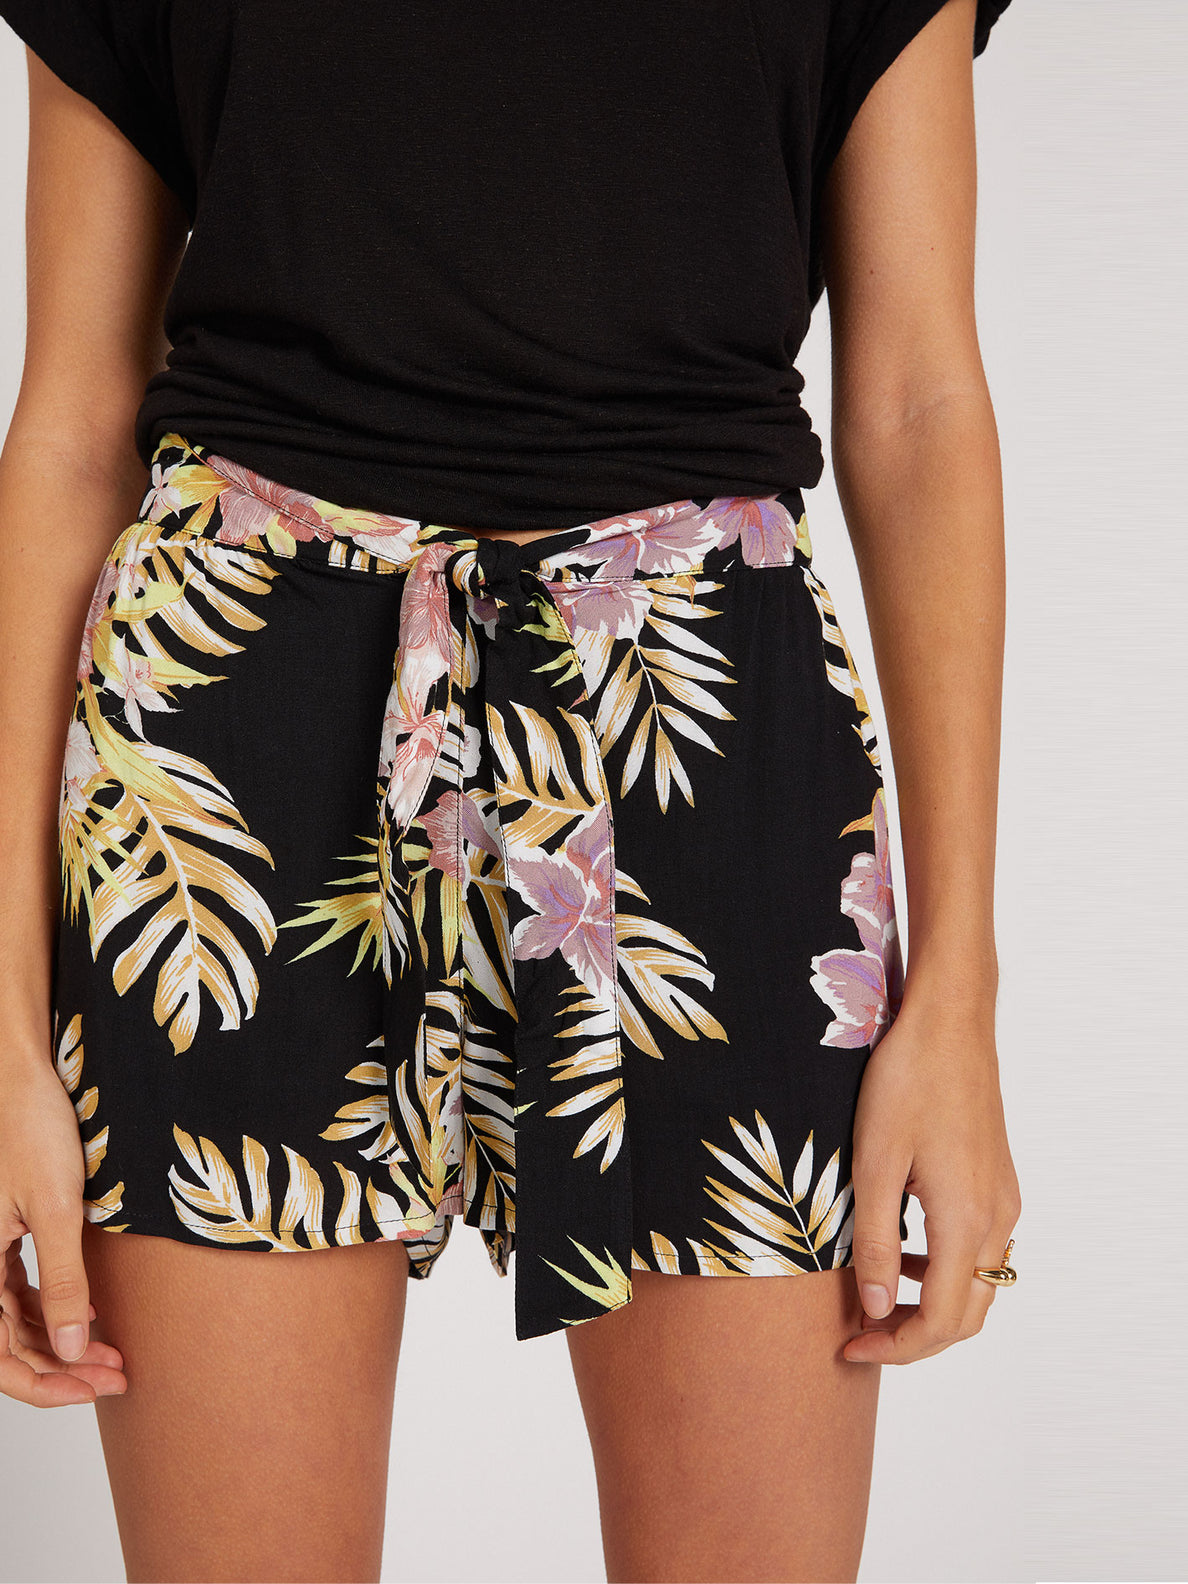 FORGET YOSELF SHORT - BLACK FLORAL PRINT (B0922000_BFP) [50]